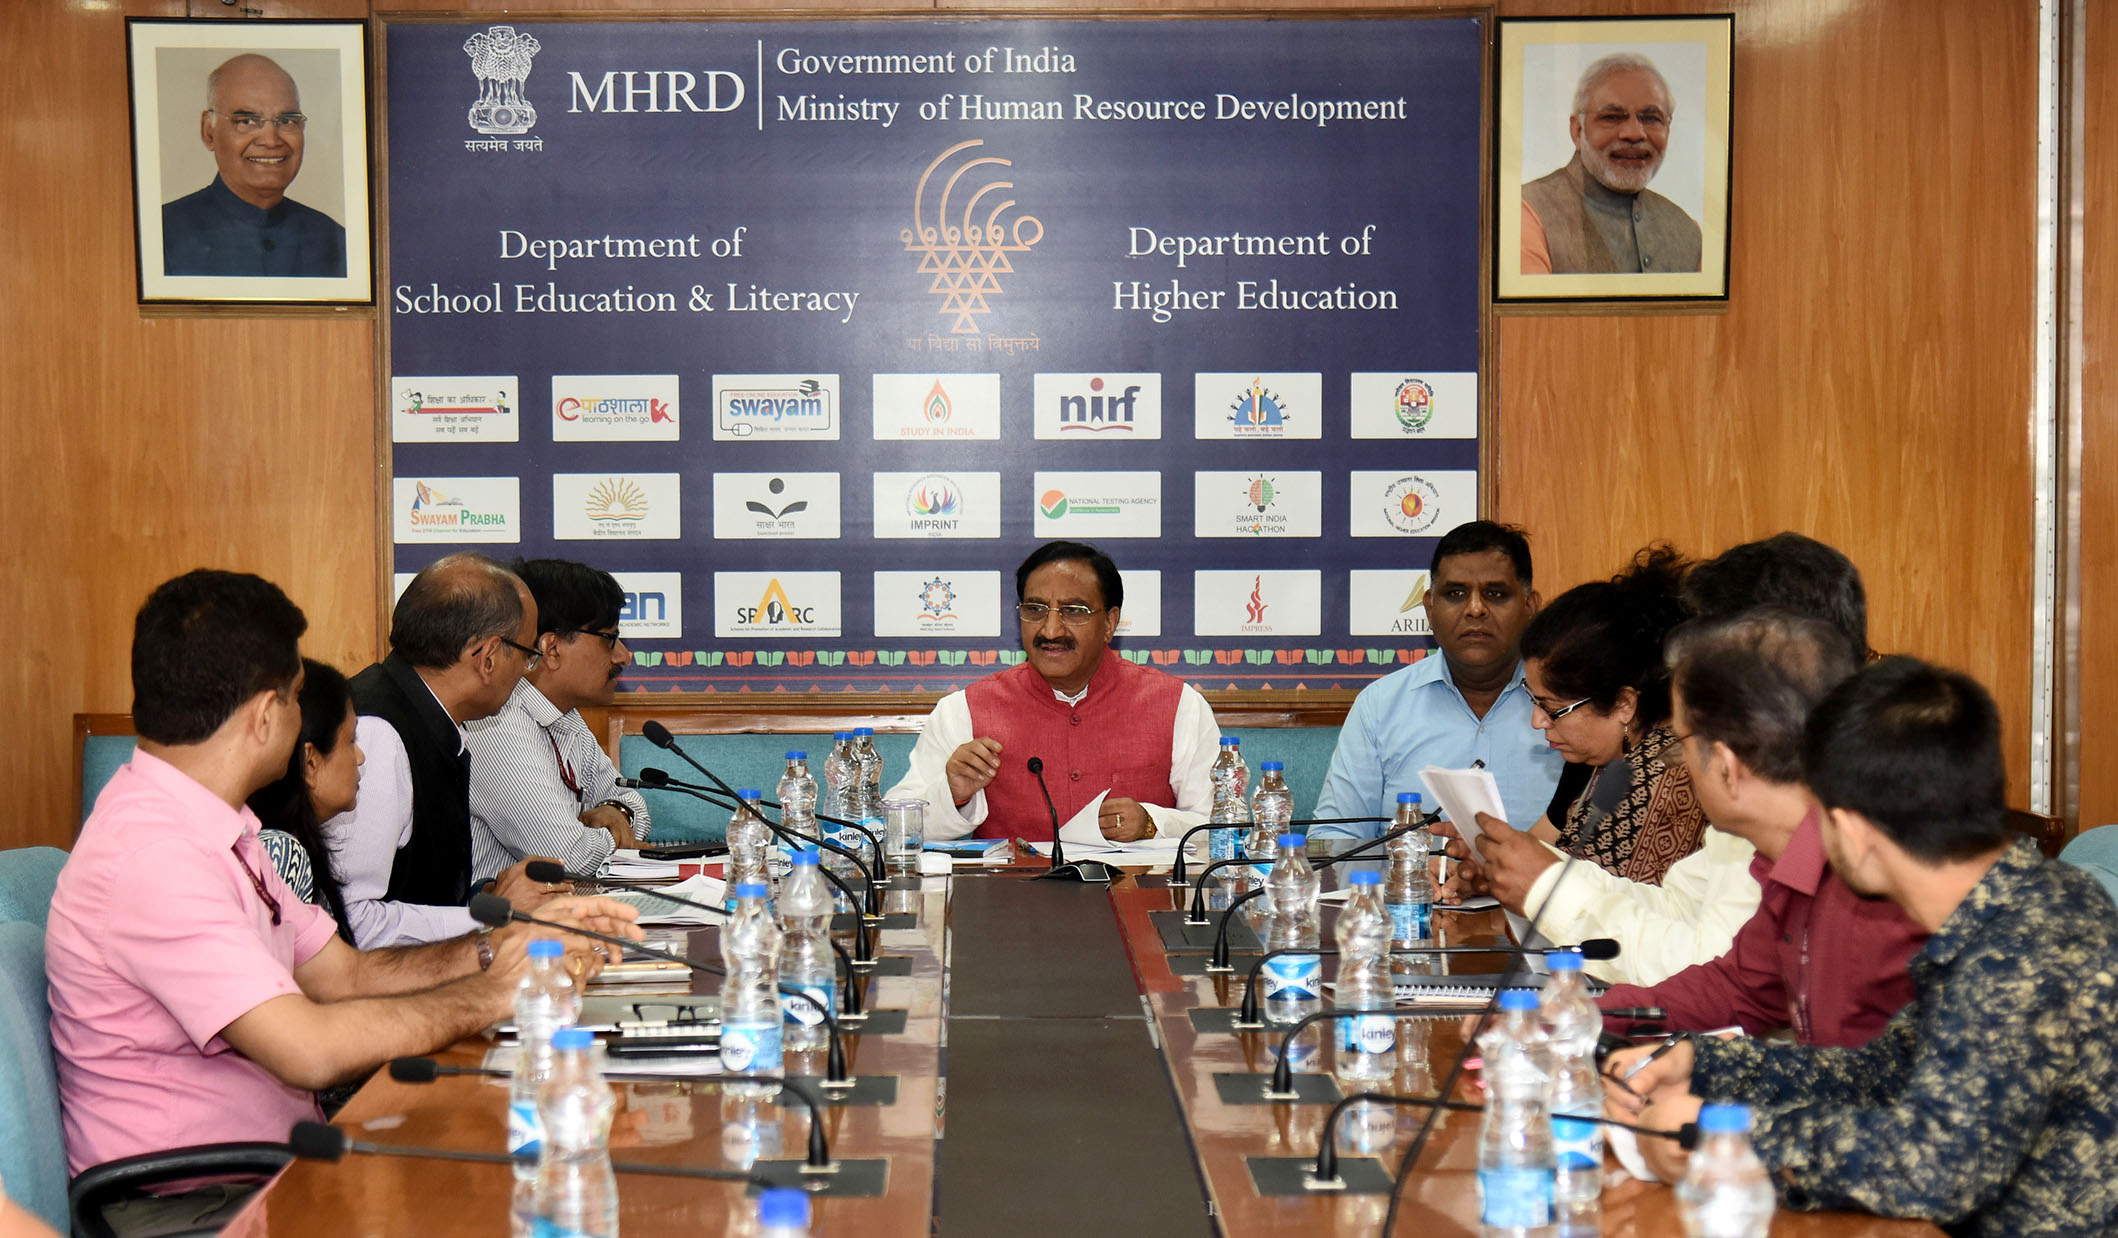 The Union Minister for Human Resource Development, Dr. Ramesh Pokhriyal 'Nishank' at a review meeting, in New Delhi